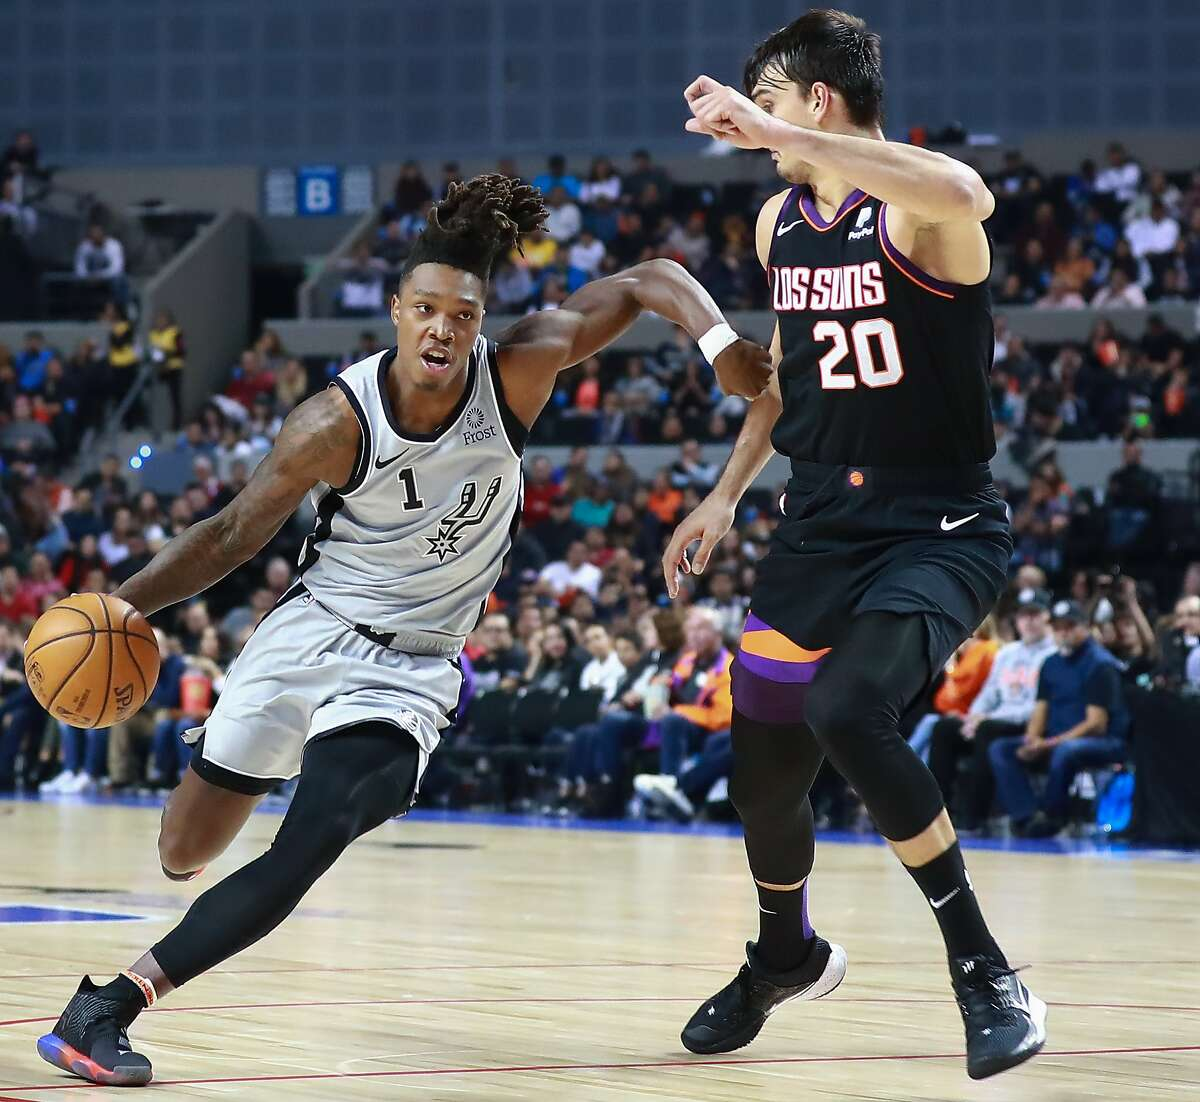 MEXICO CITY, MEXICO - DECEMBER 14: Lonnie Walker IV #1 of the San Antonio Spurs handles the ball against Dario Saric #20 of the Phoenix Suns during a game between San Antonio Spurs and Phoenix Suns at Arena Ciudad de Mexico on December 14, 2019 in Mexico City, Mexico. (Photo by Hector Vivas/Getty Images)